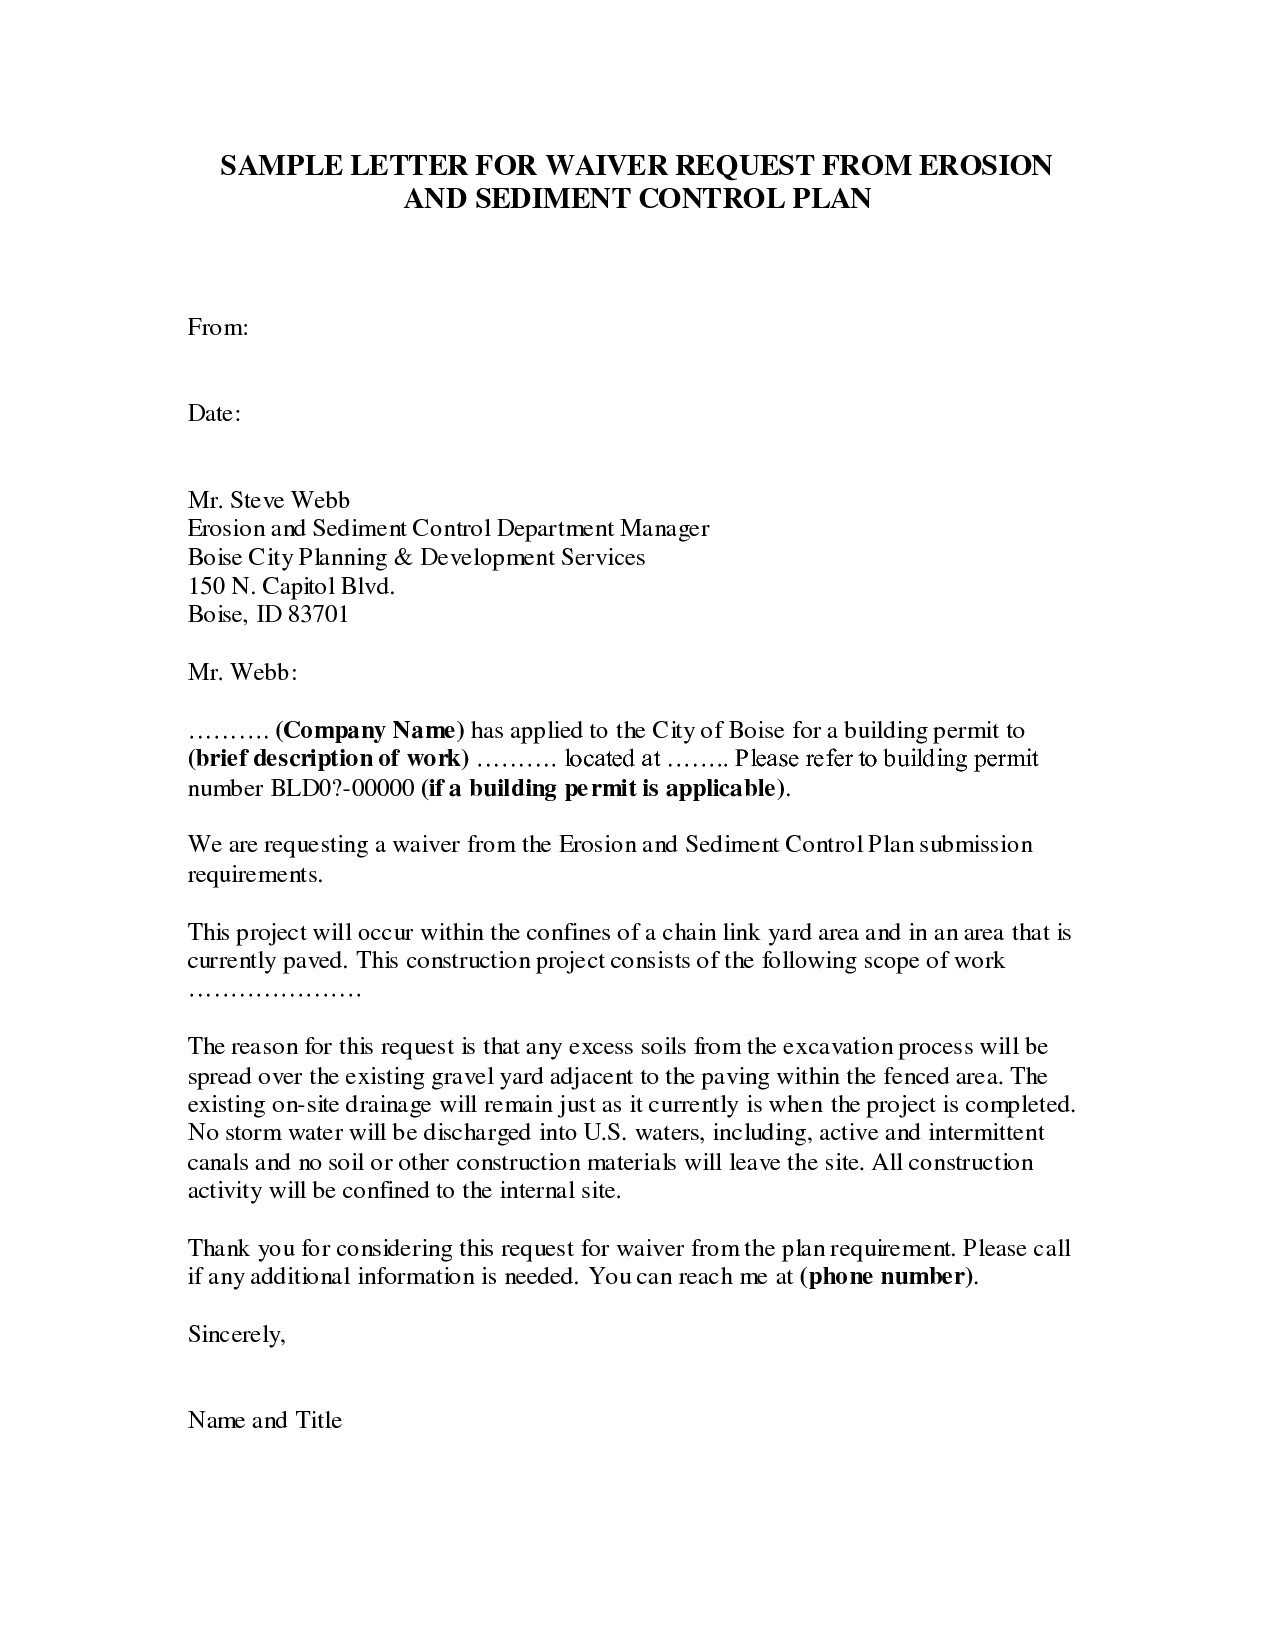 Termination Letter Template - Save Sample A Job Termination Letter